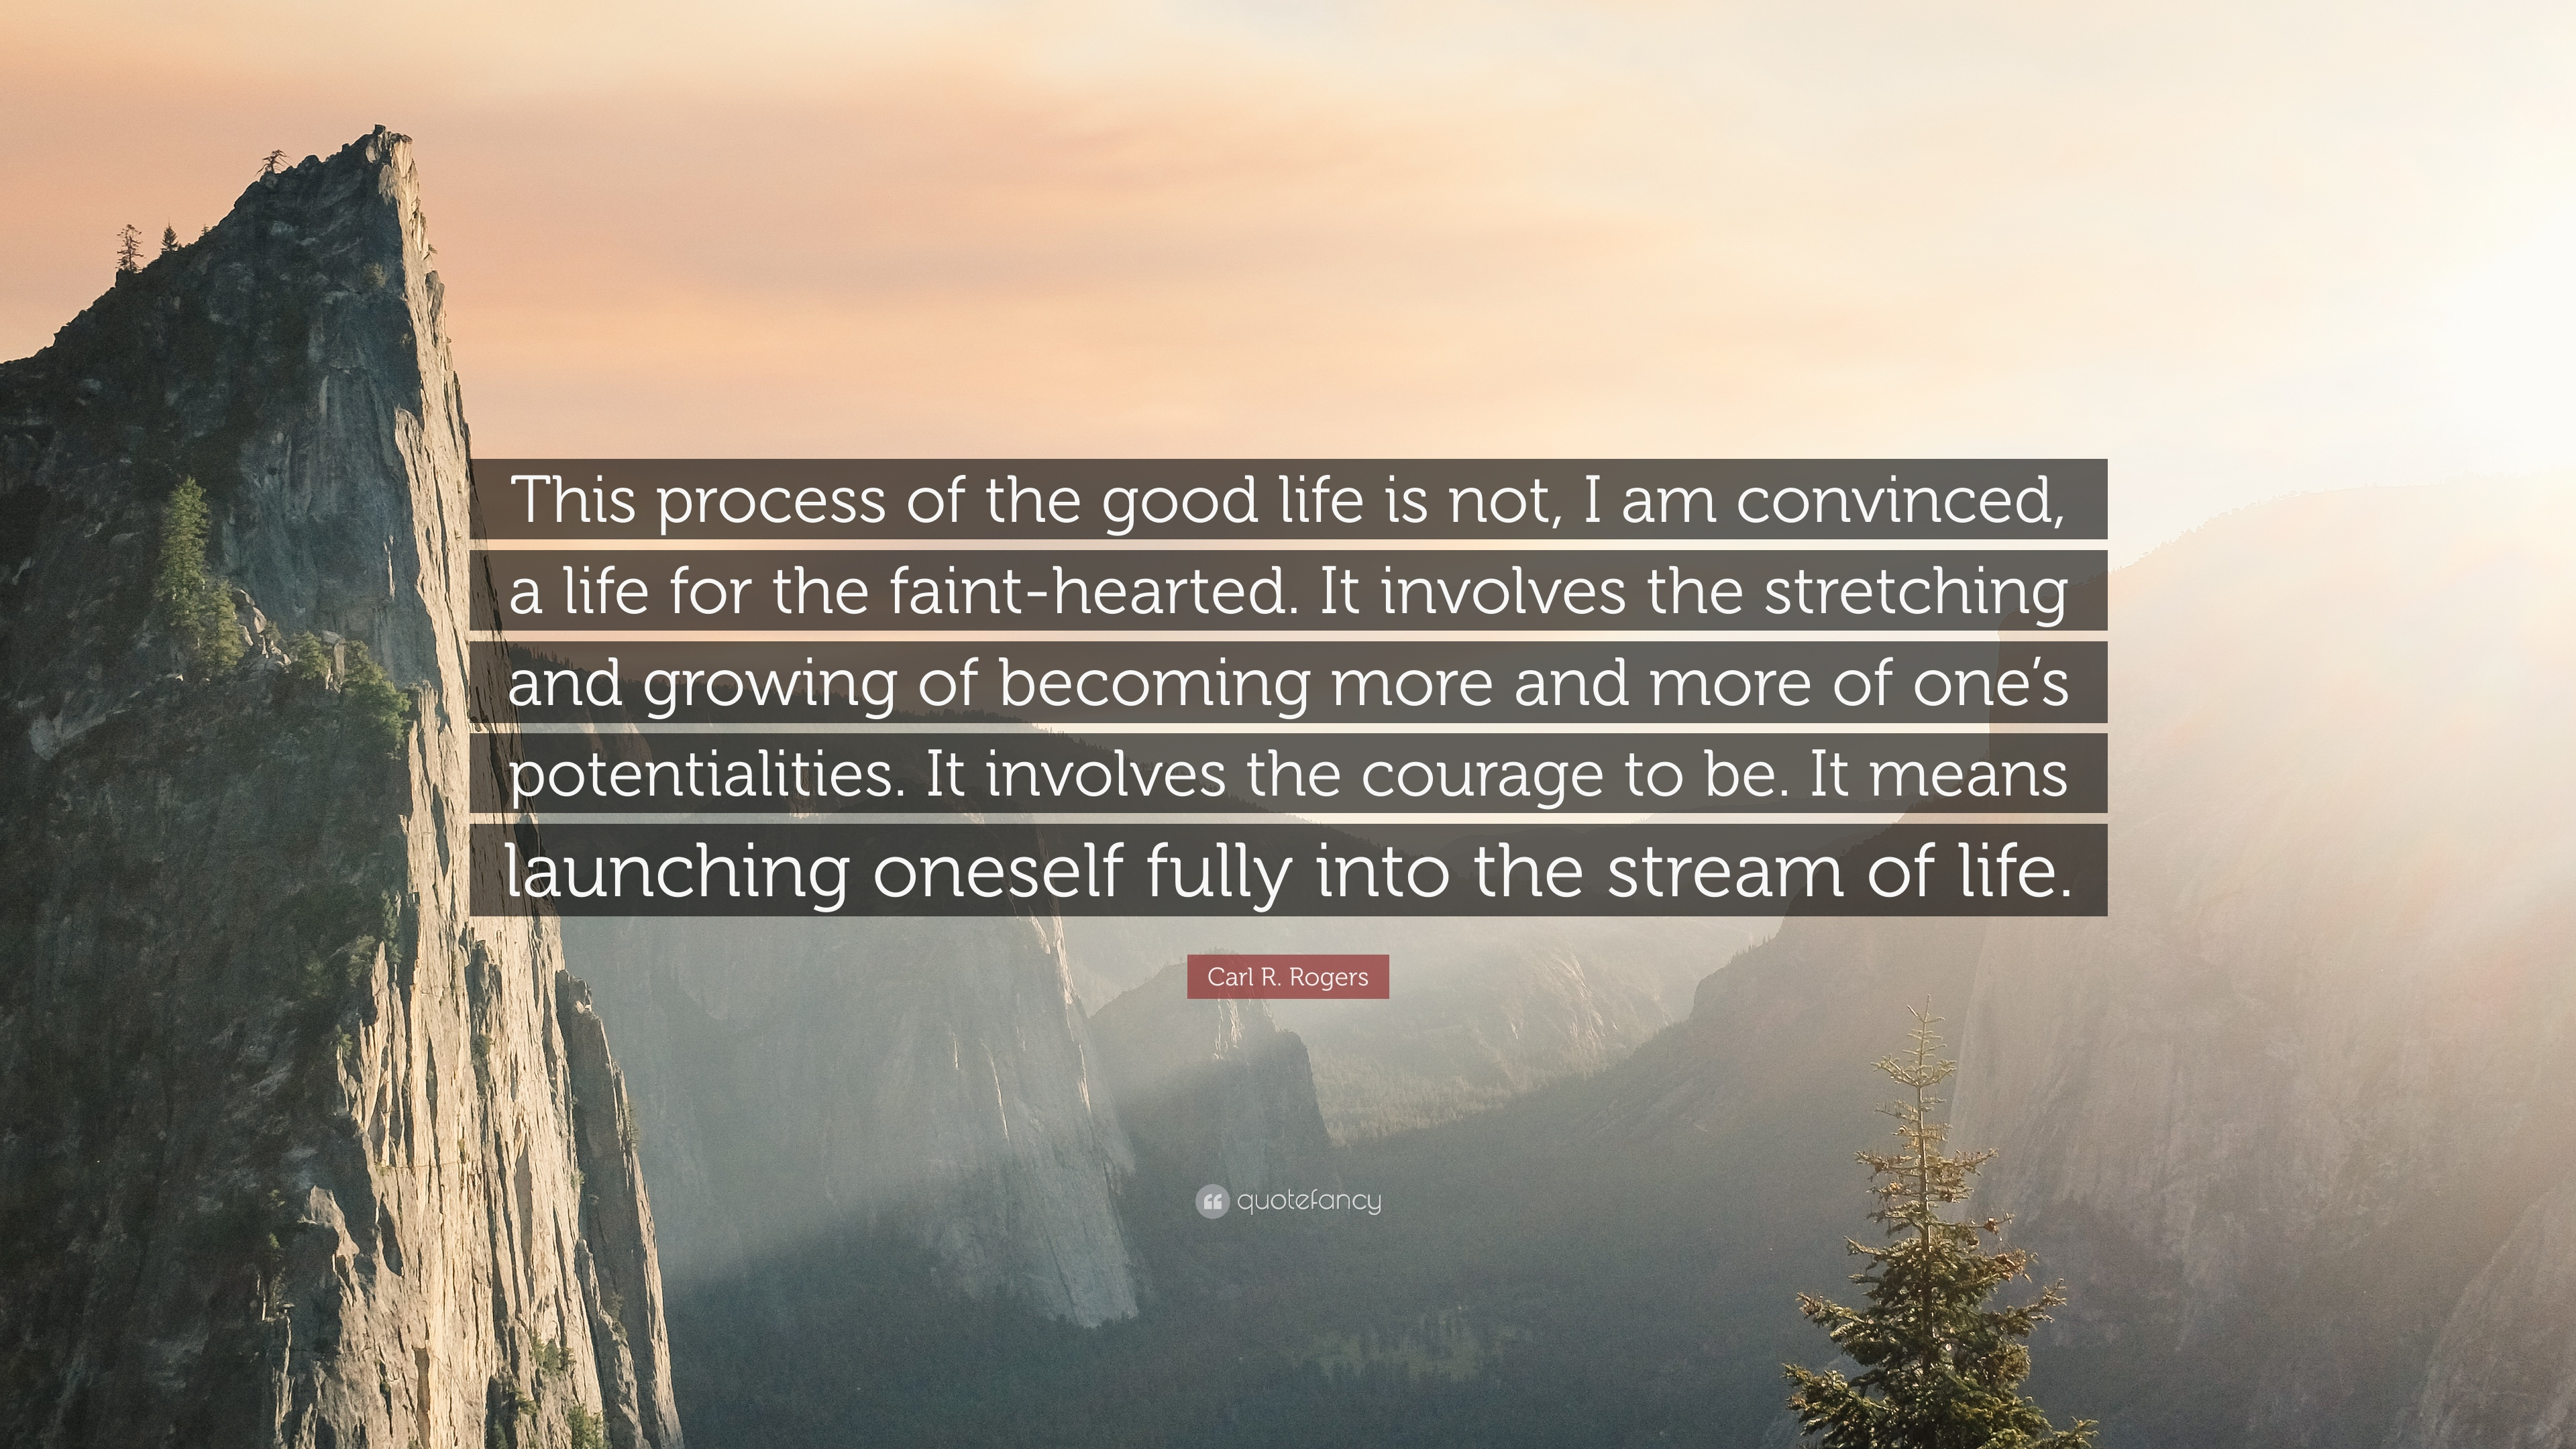 Carl R Rogers Quote This Process Of The Good Life Is Not I Am Convinced A Life For The Faint Hearted It Involves The Stretching And Growi 12 Wallpapers Quotefancy